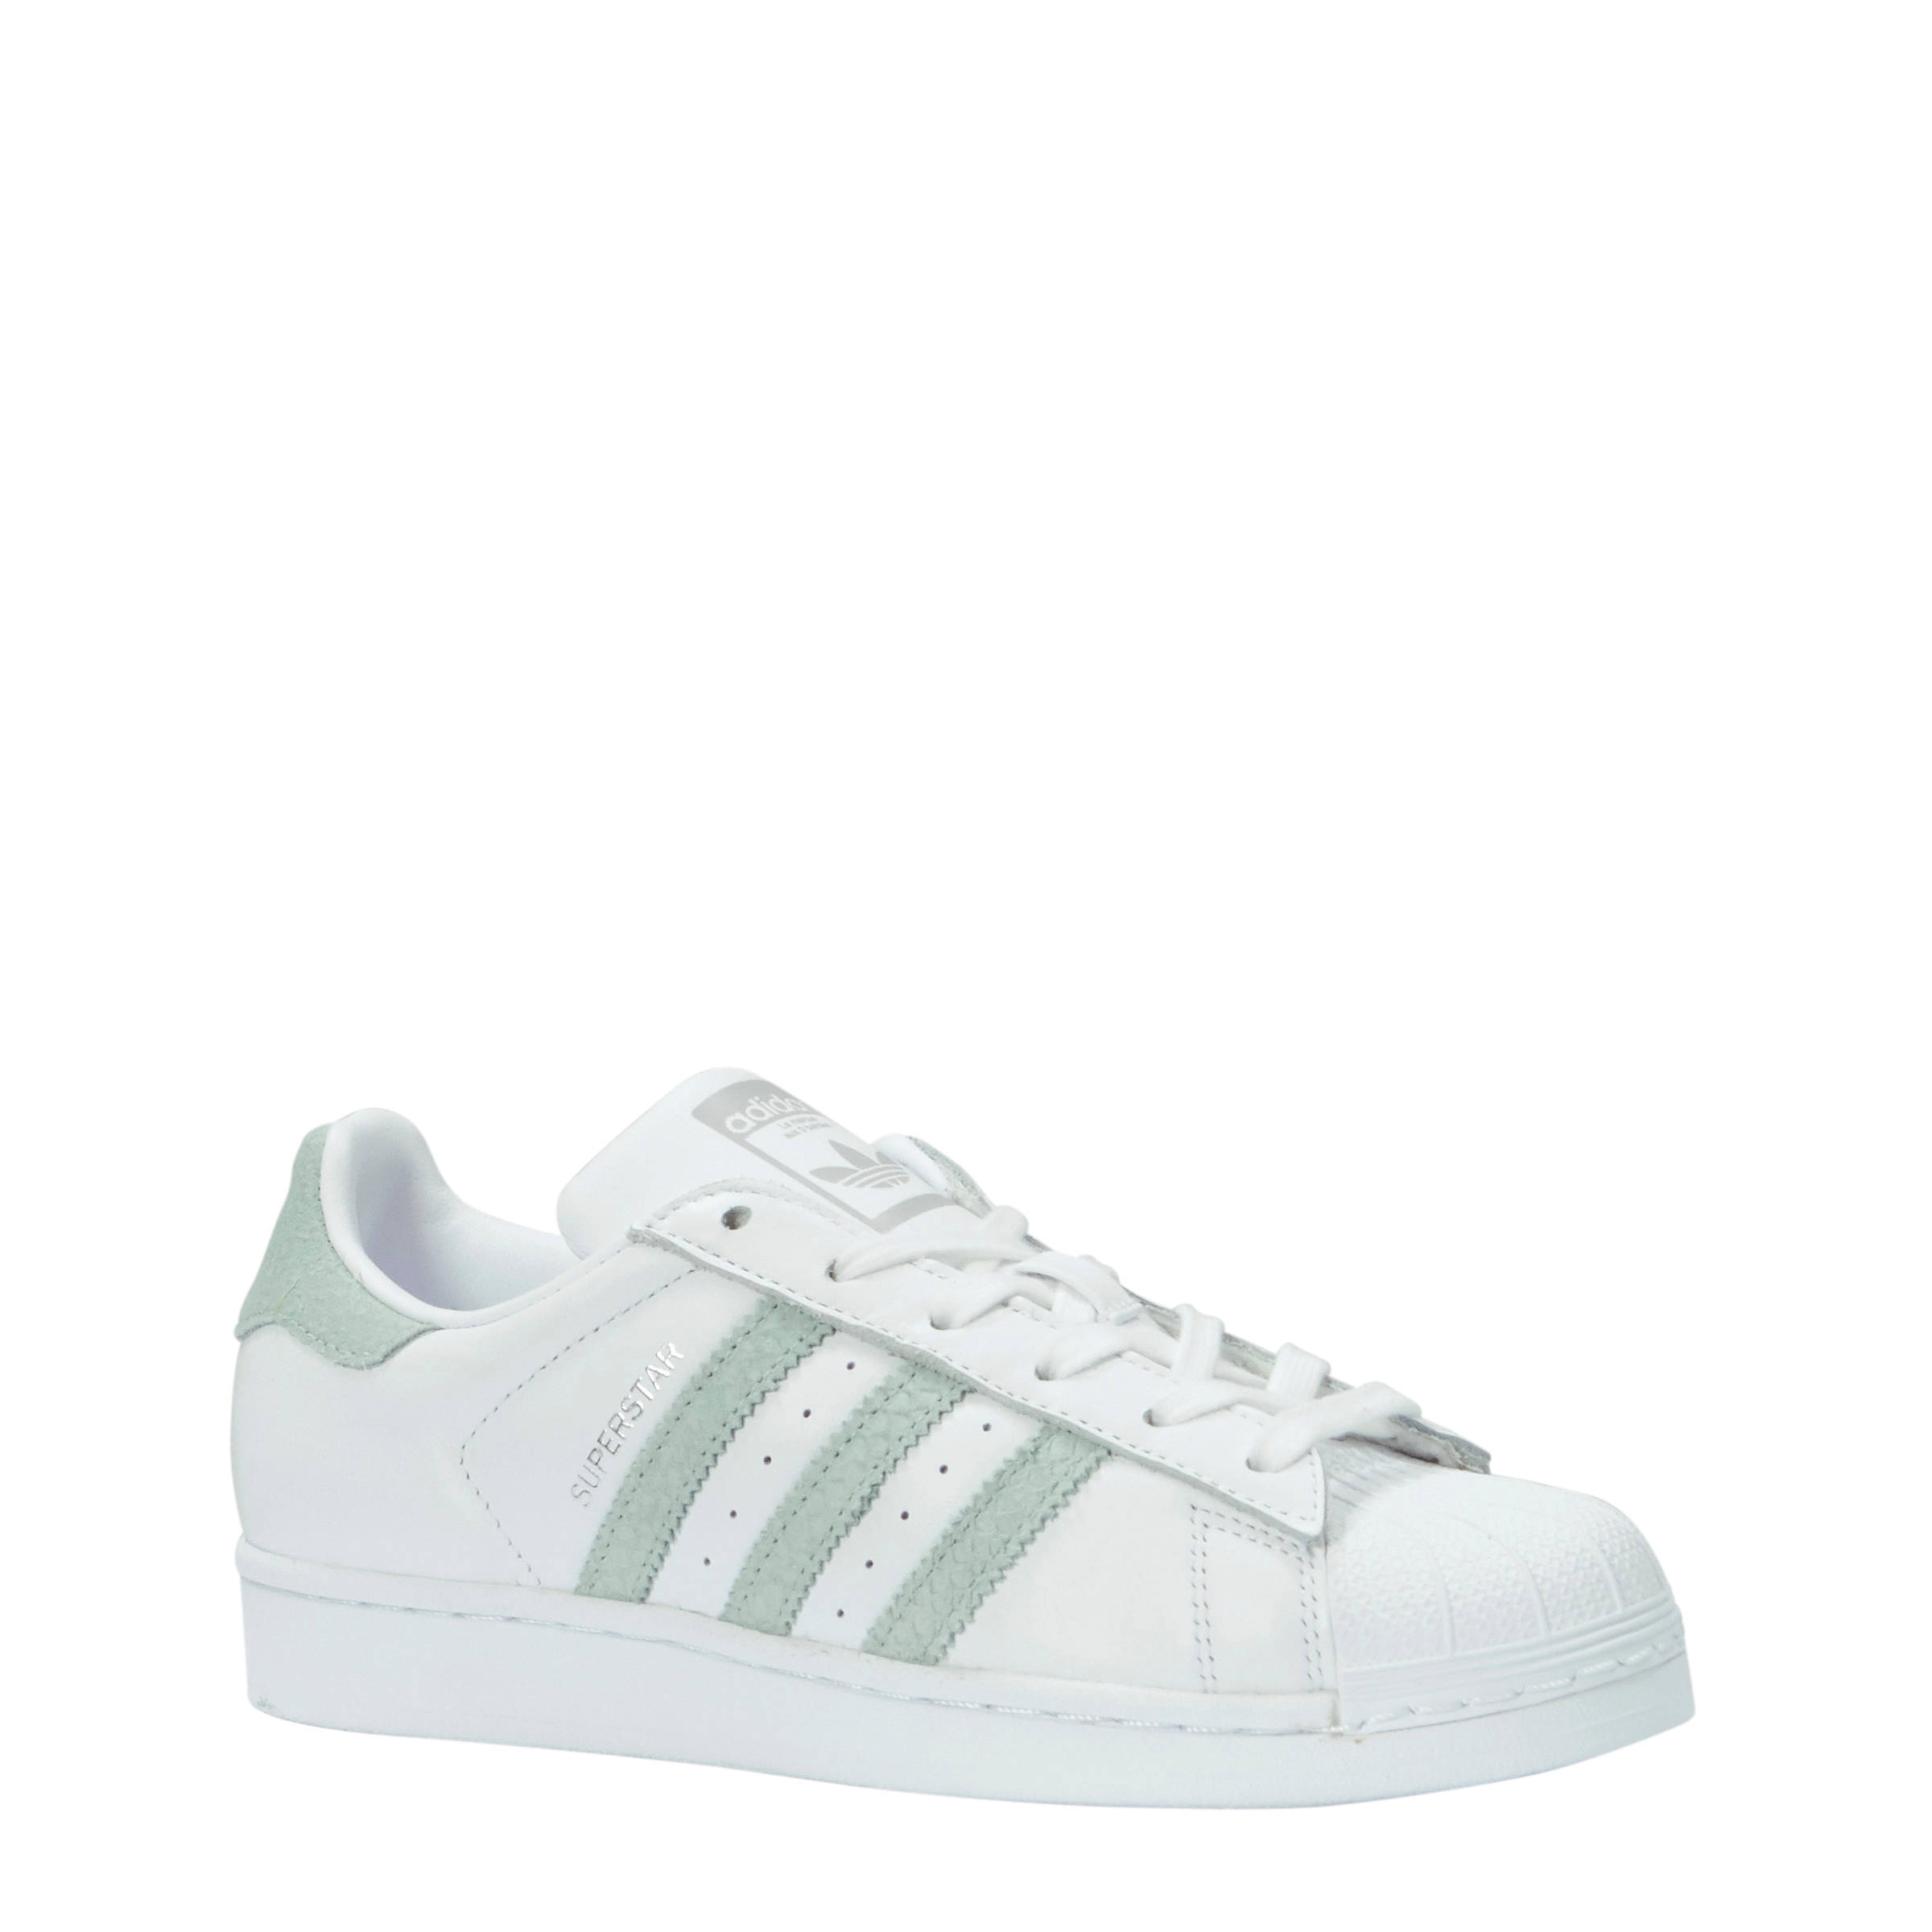 adidas superstar groen wit dames